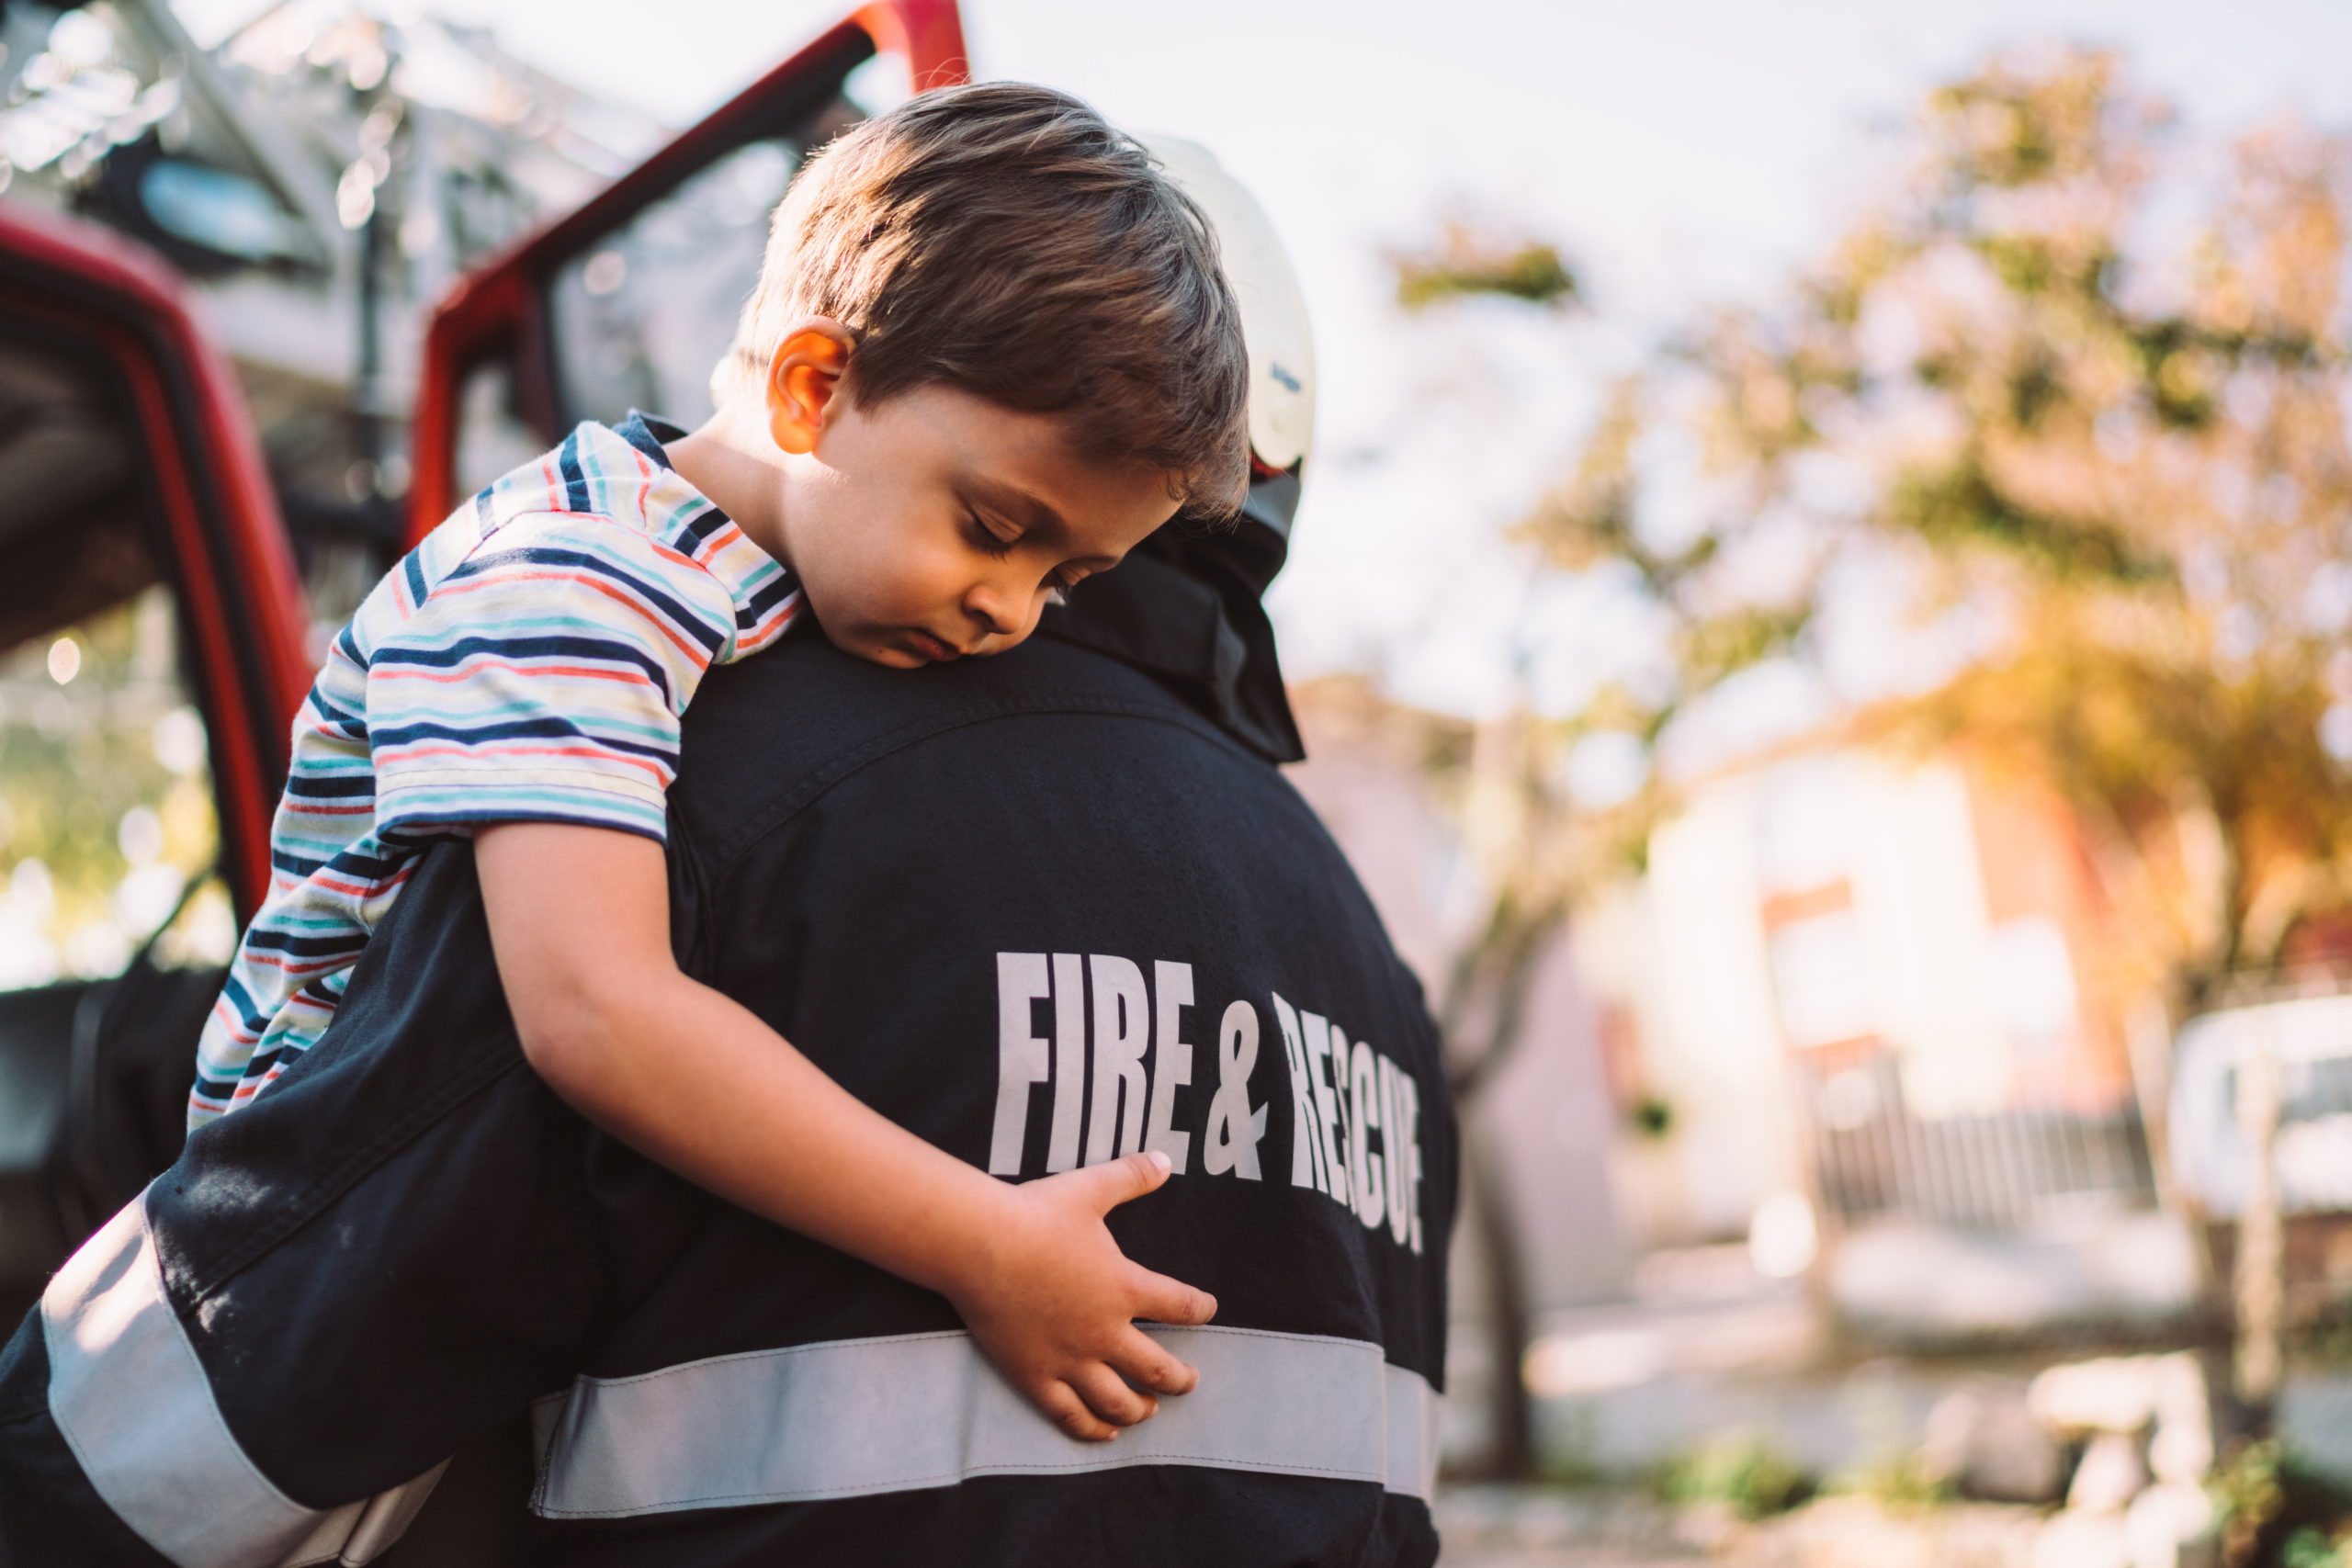 Firefighter carrying little boy after successful rescue operation